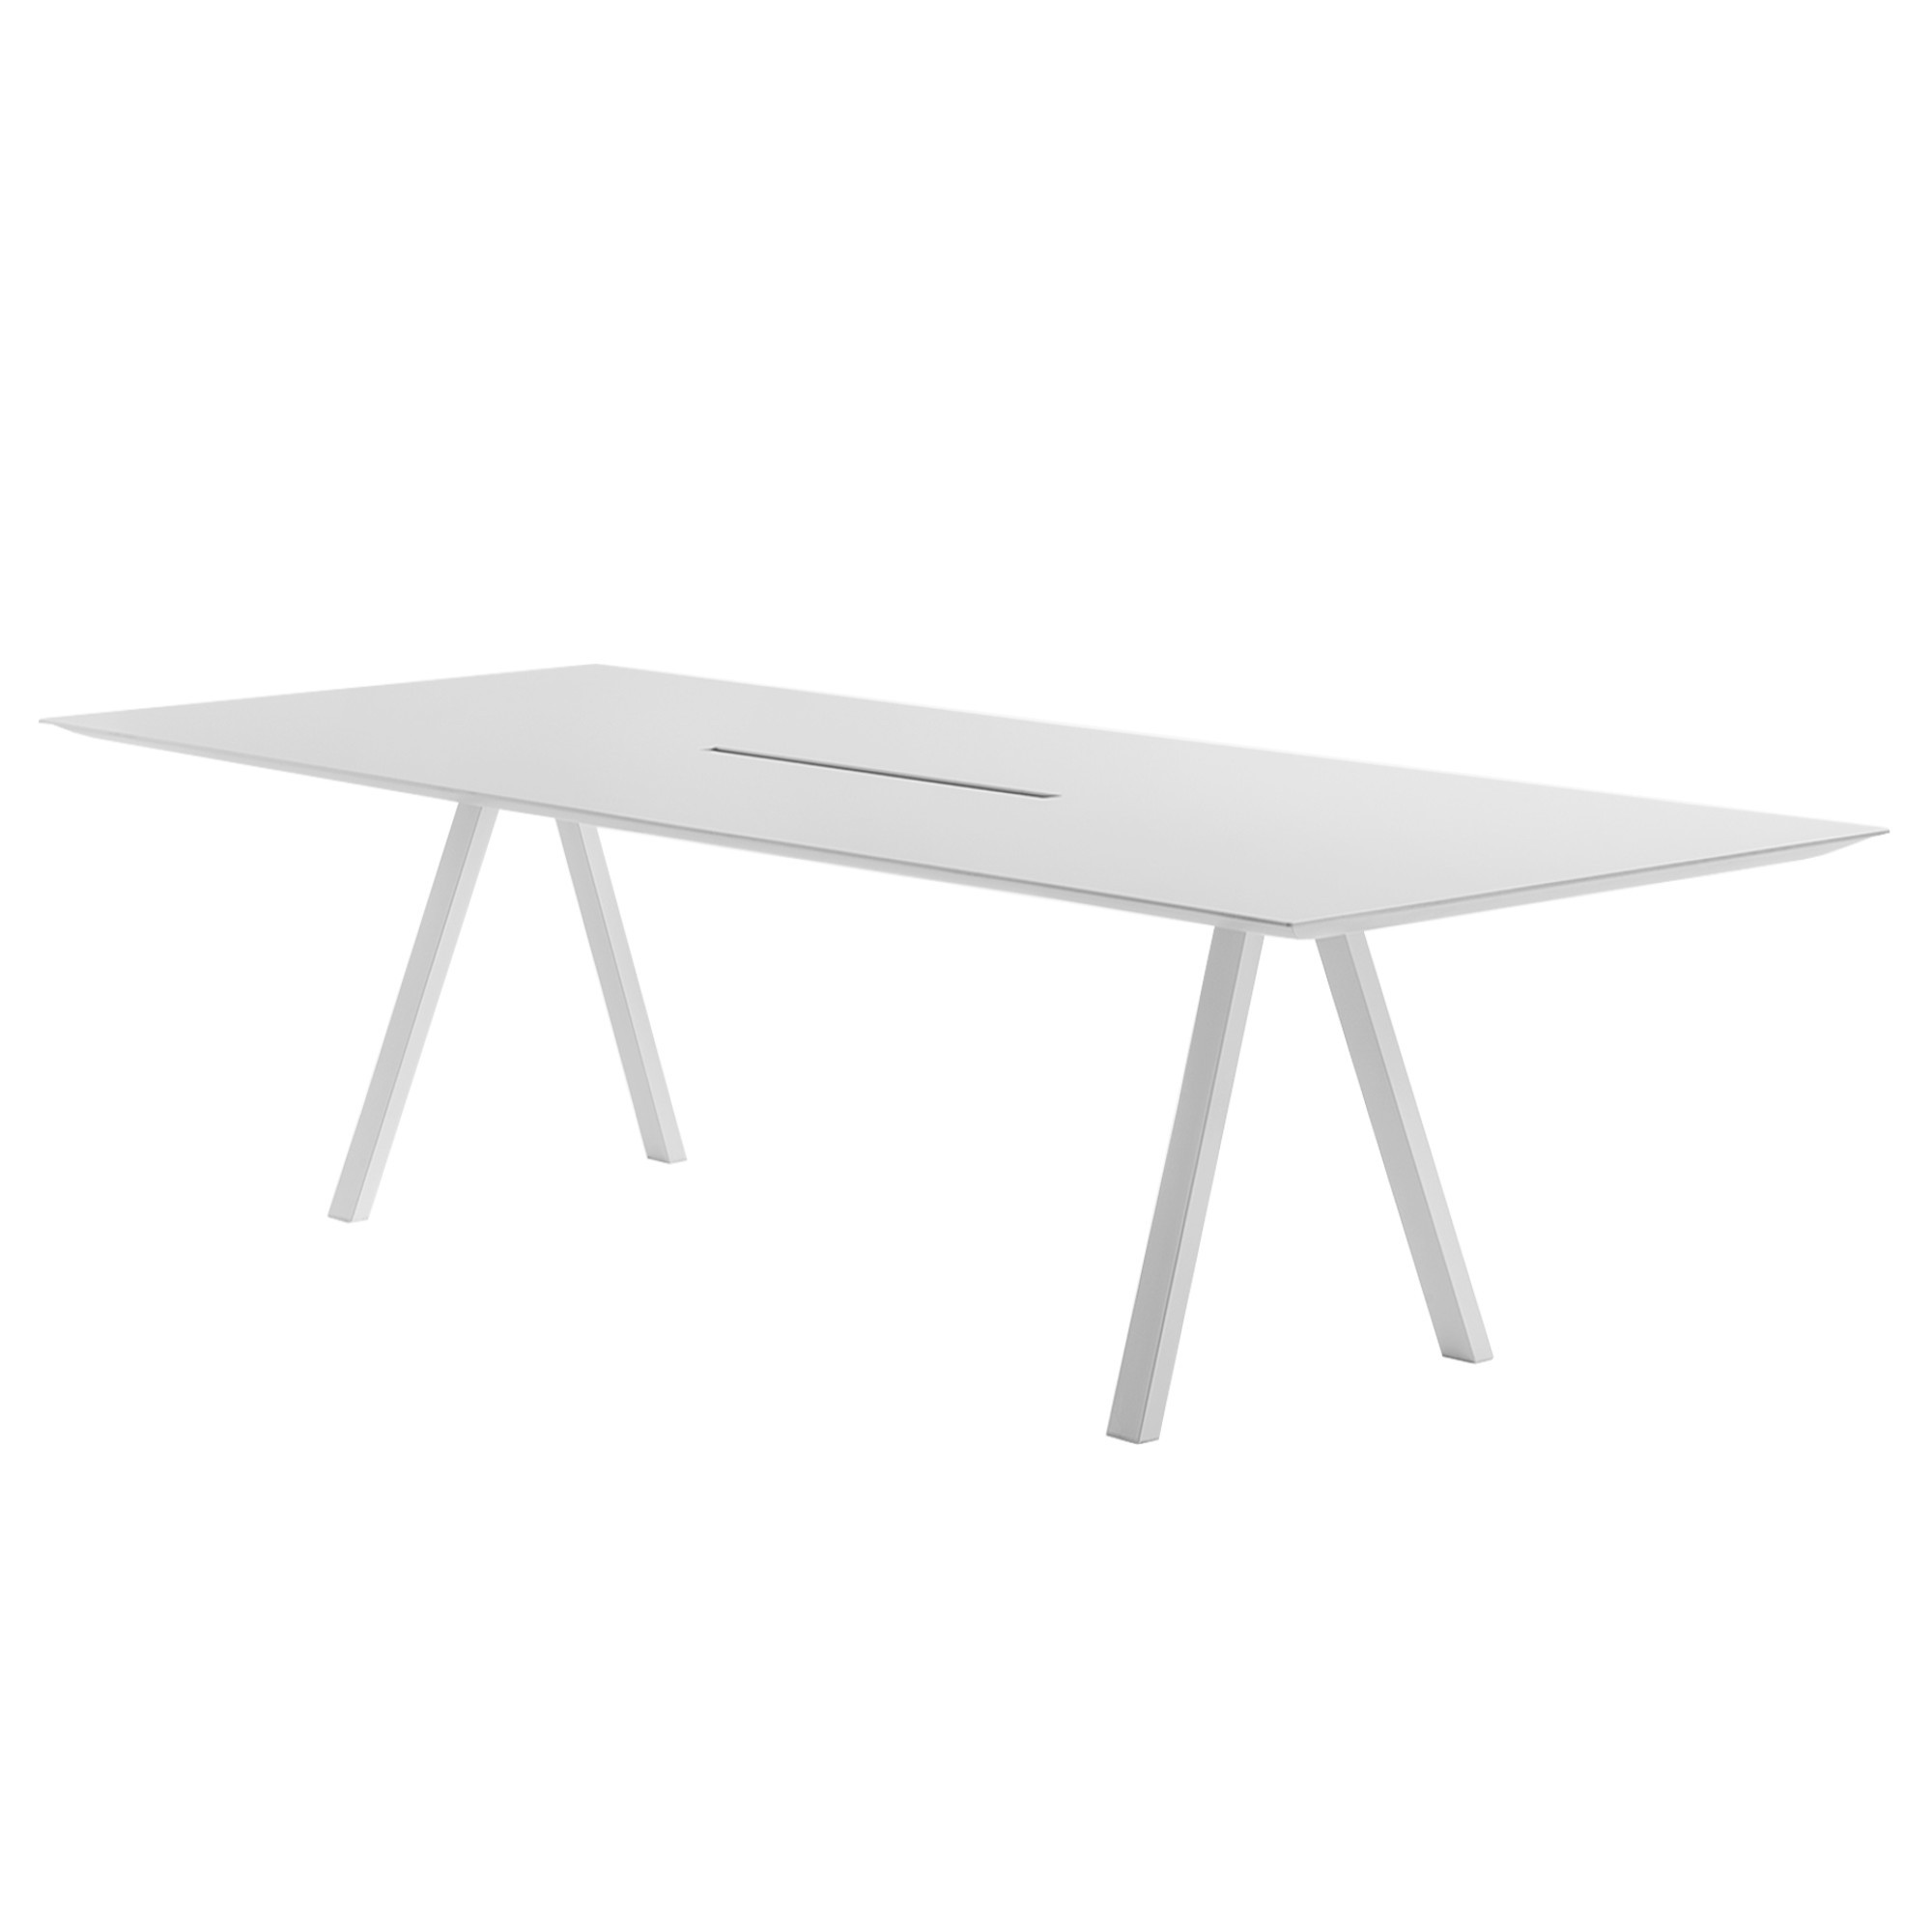 ARKI TABLE CON CANALINA, by PEDRALI